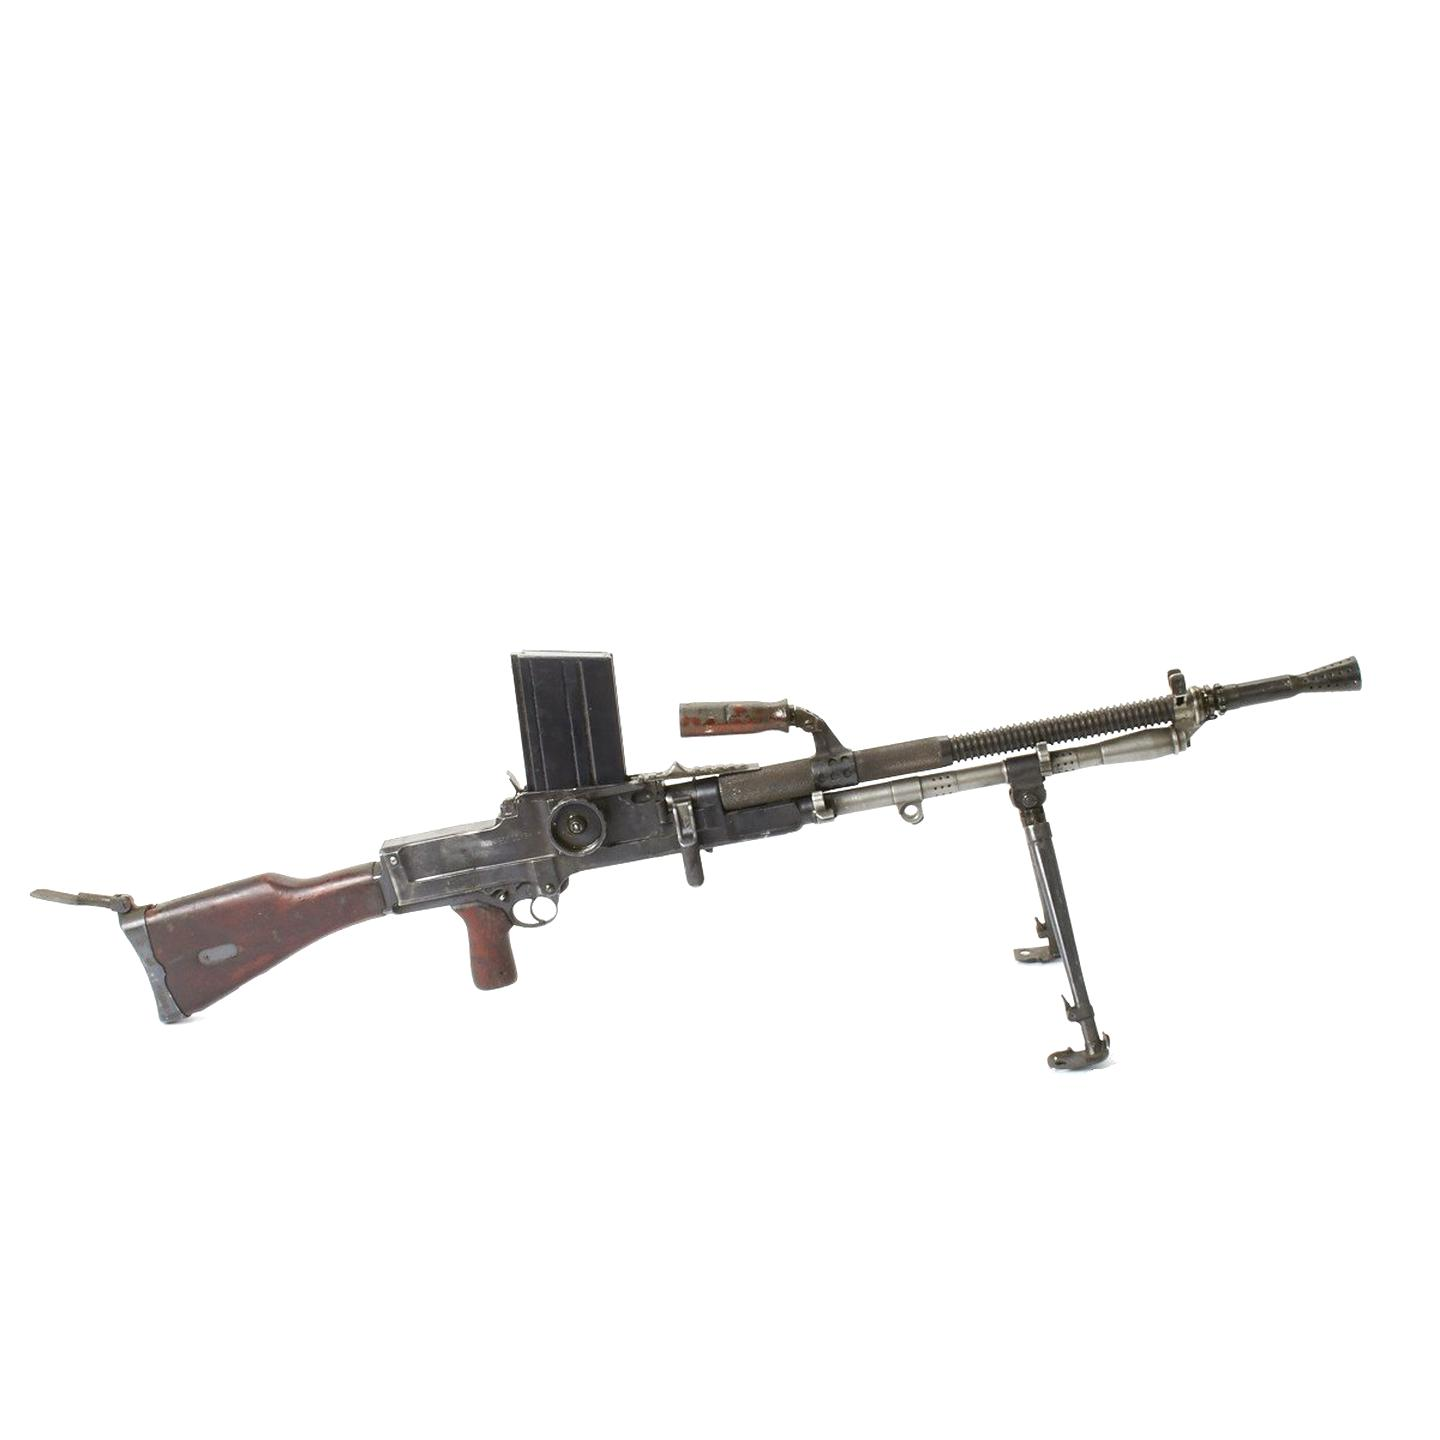 zb30 for sale